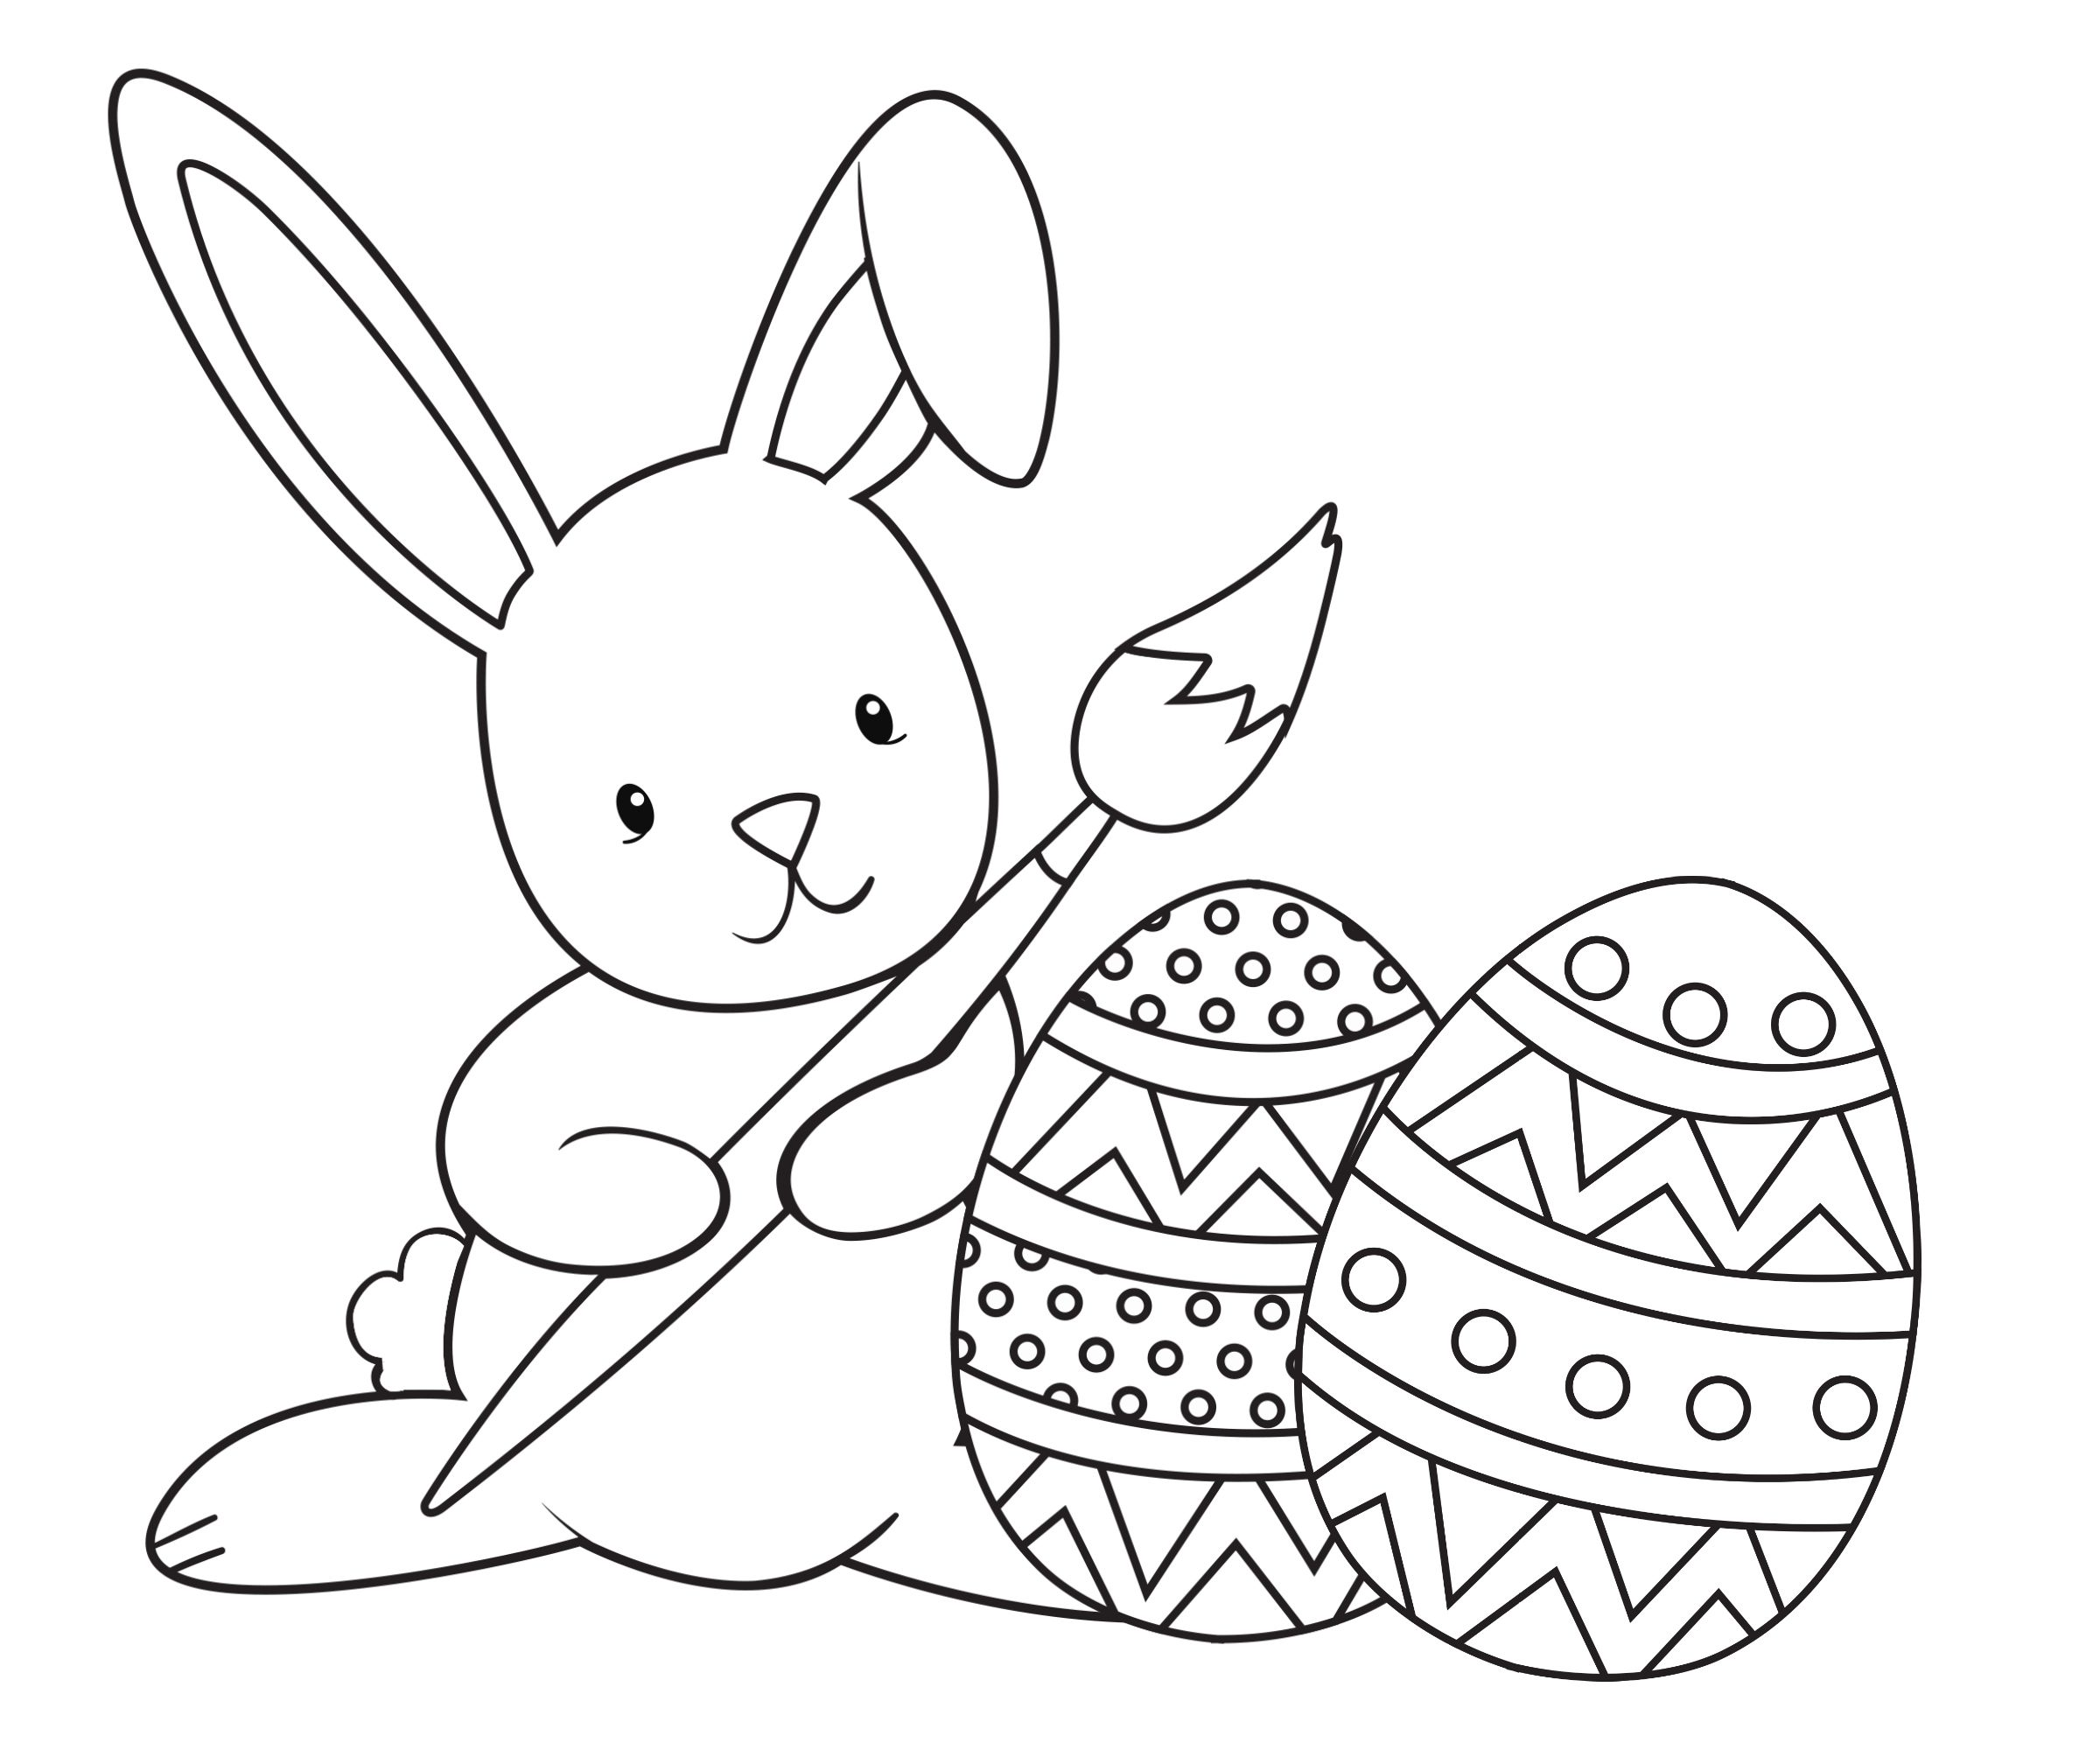 Easter Coloring Pages For Kids Easter Coloring Book Easter